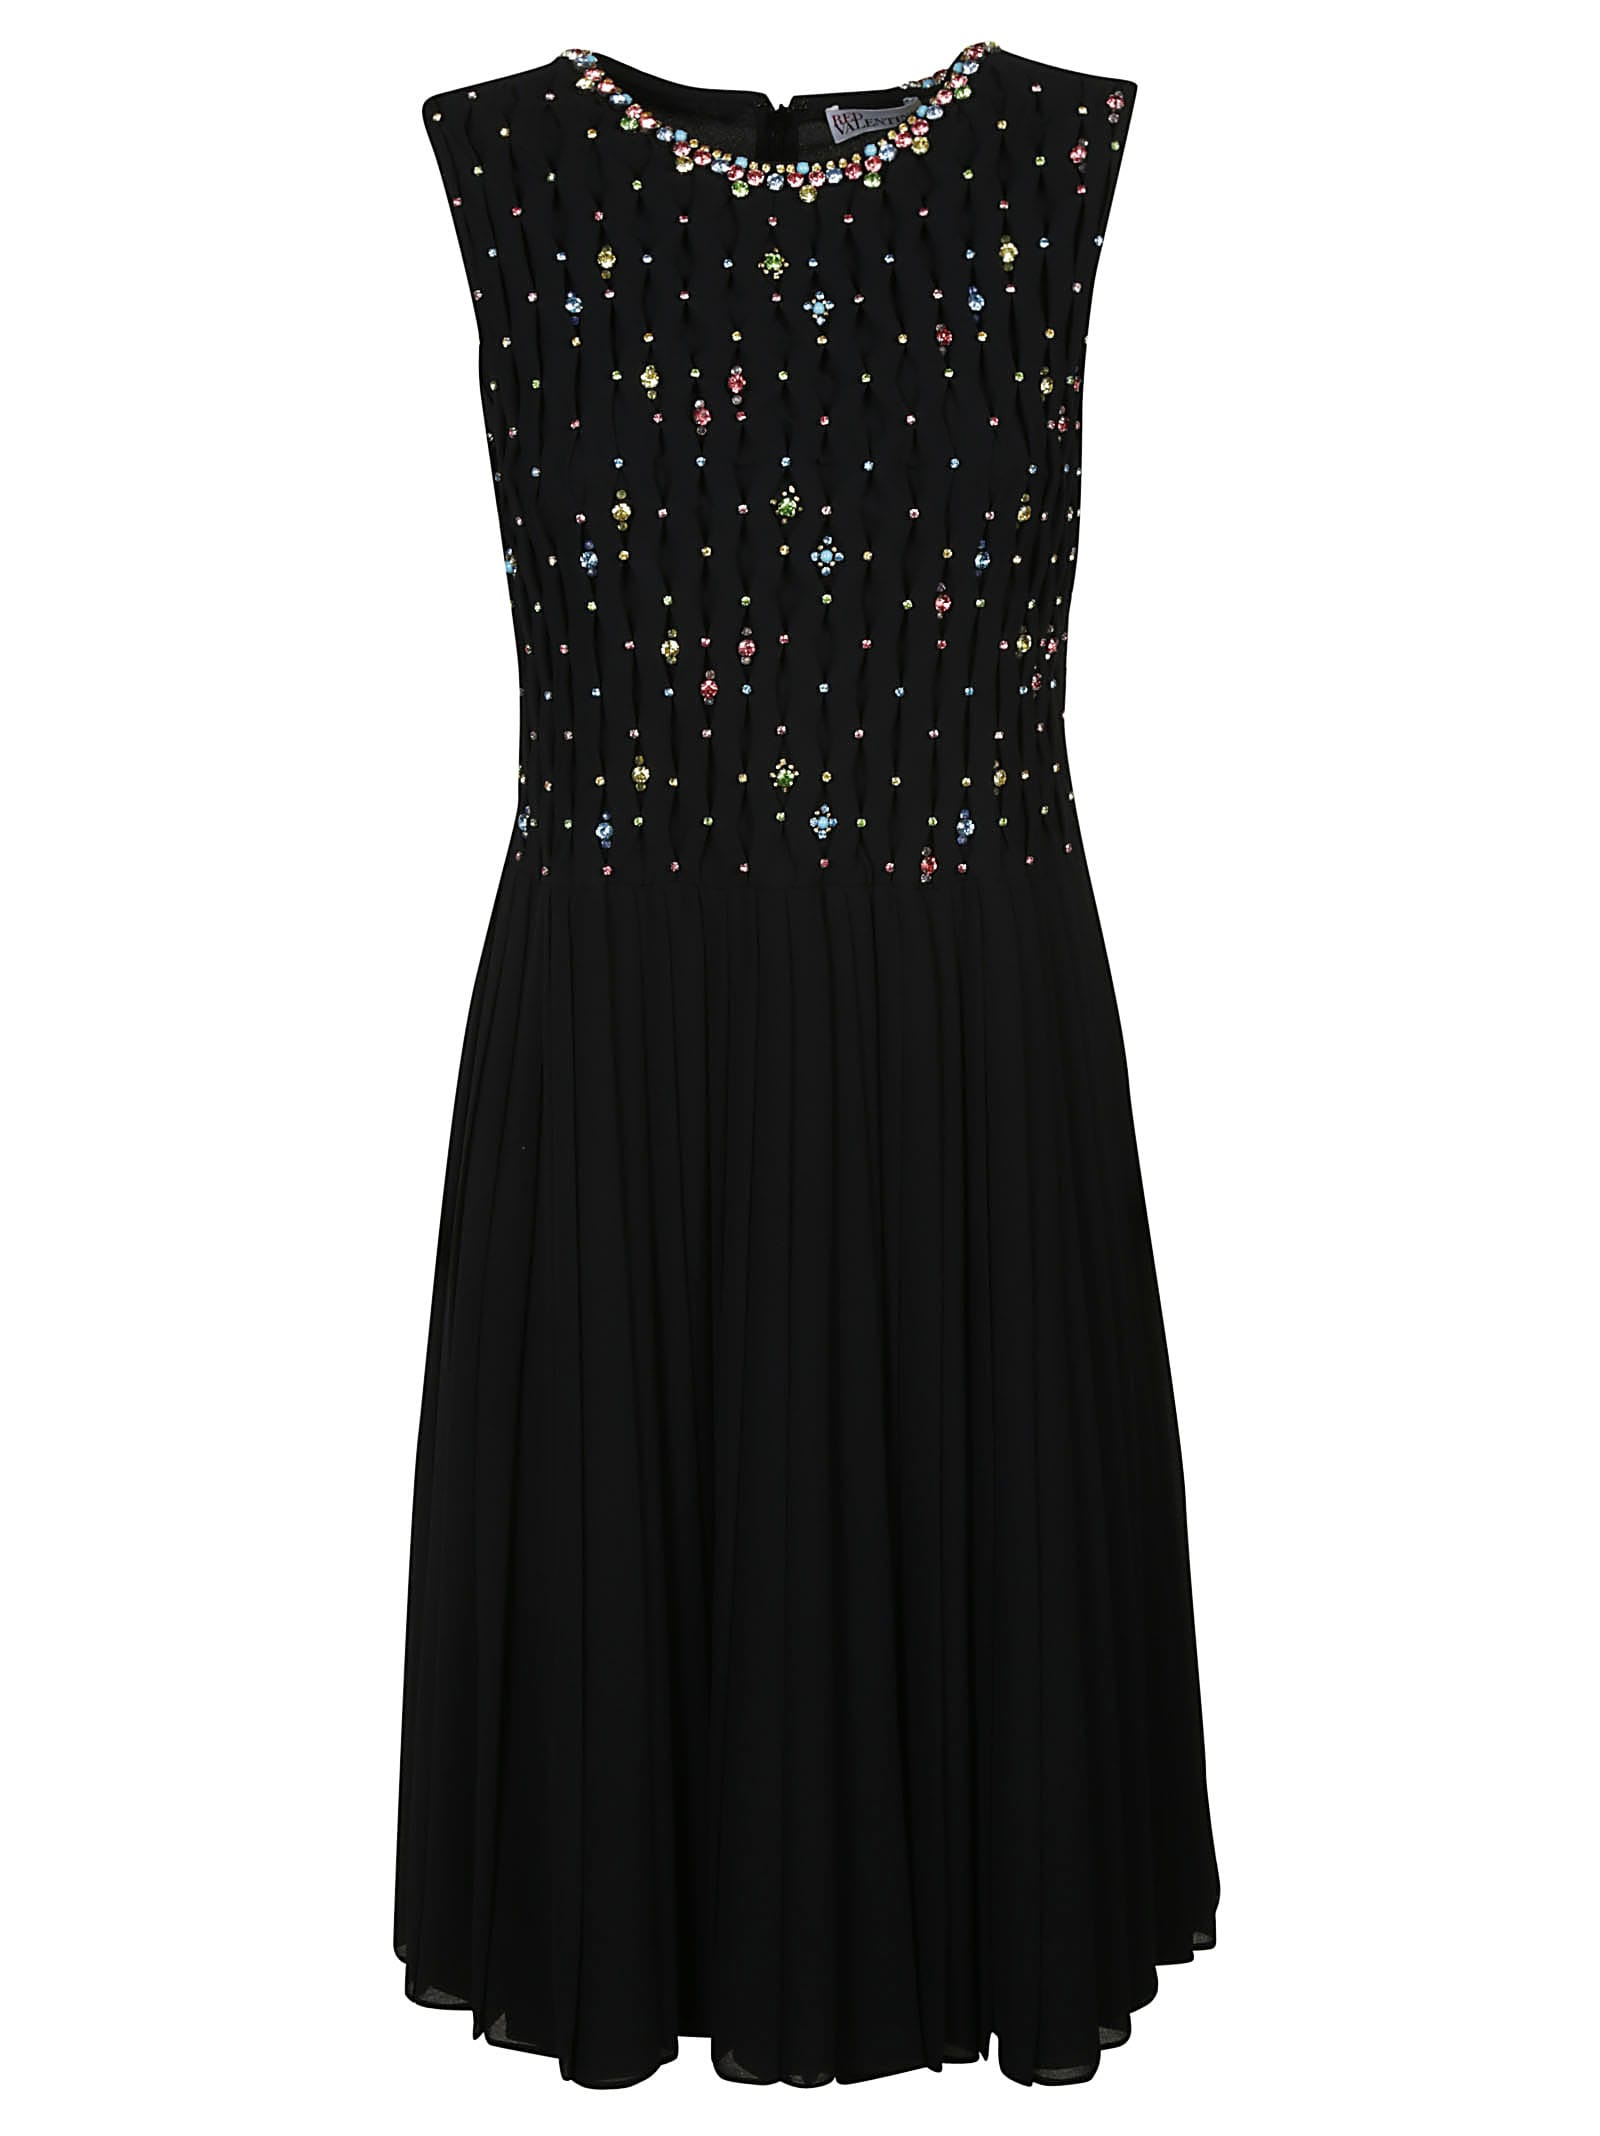 RED Valentino Embellished Dress